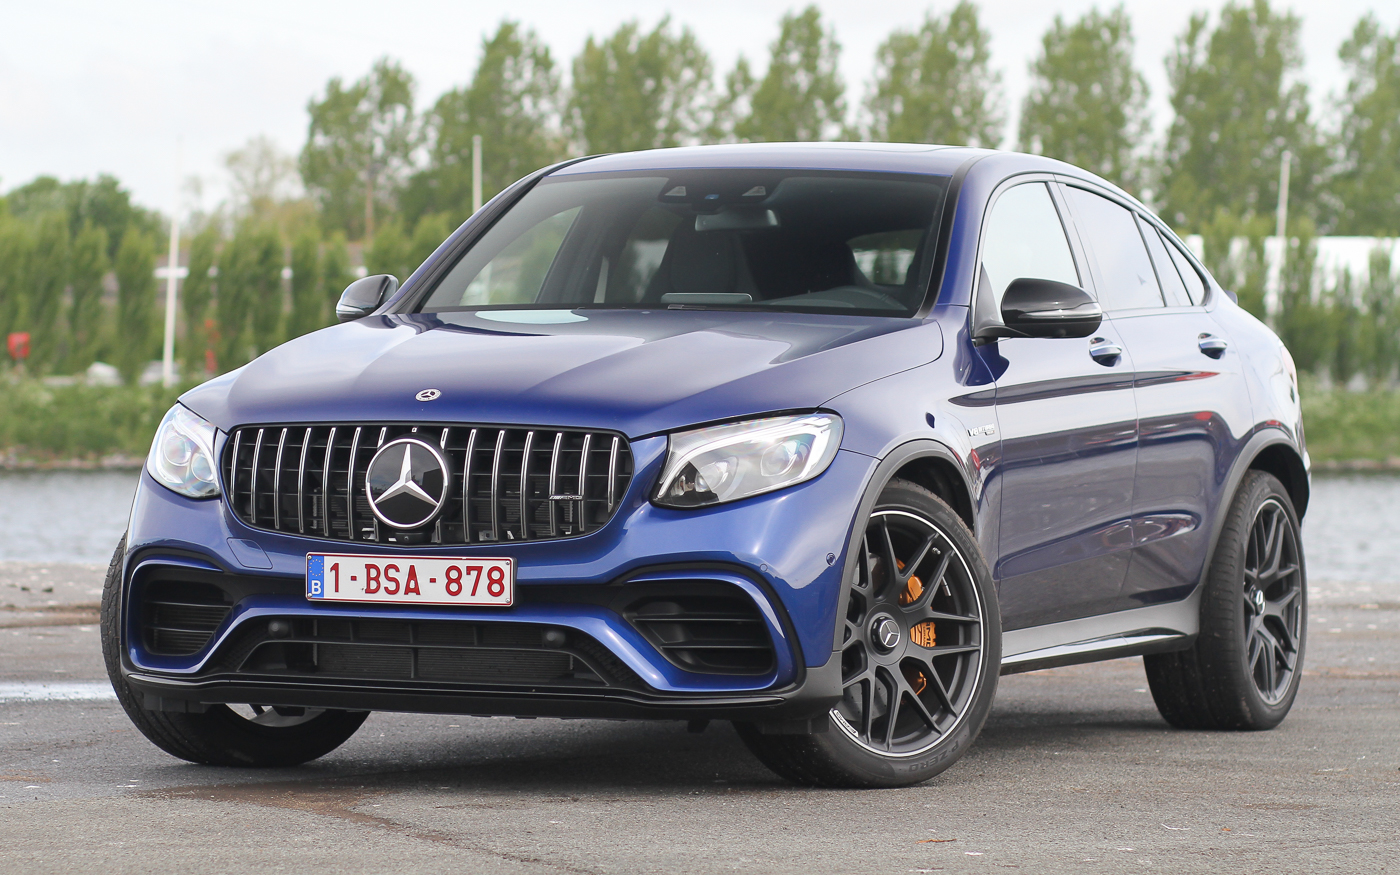 Rijtest: Mercedes-AMG GLC63 S 4MATIC+ Coupé